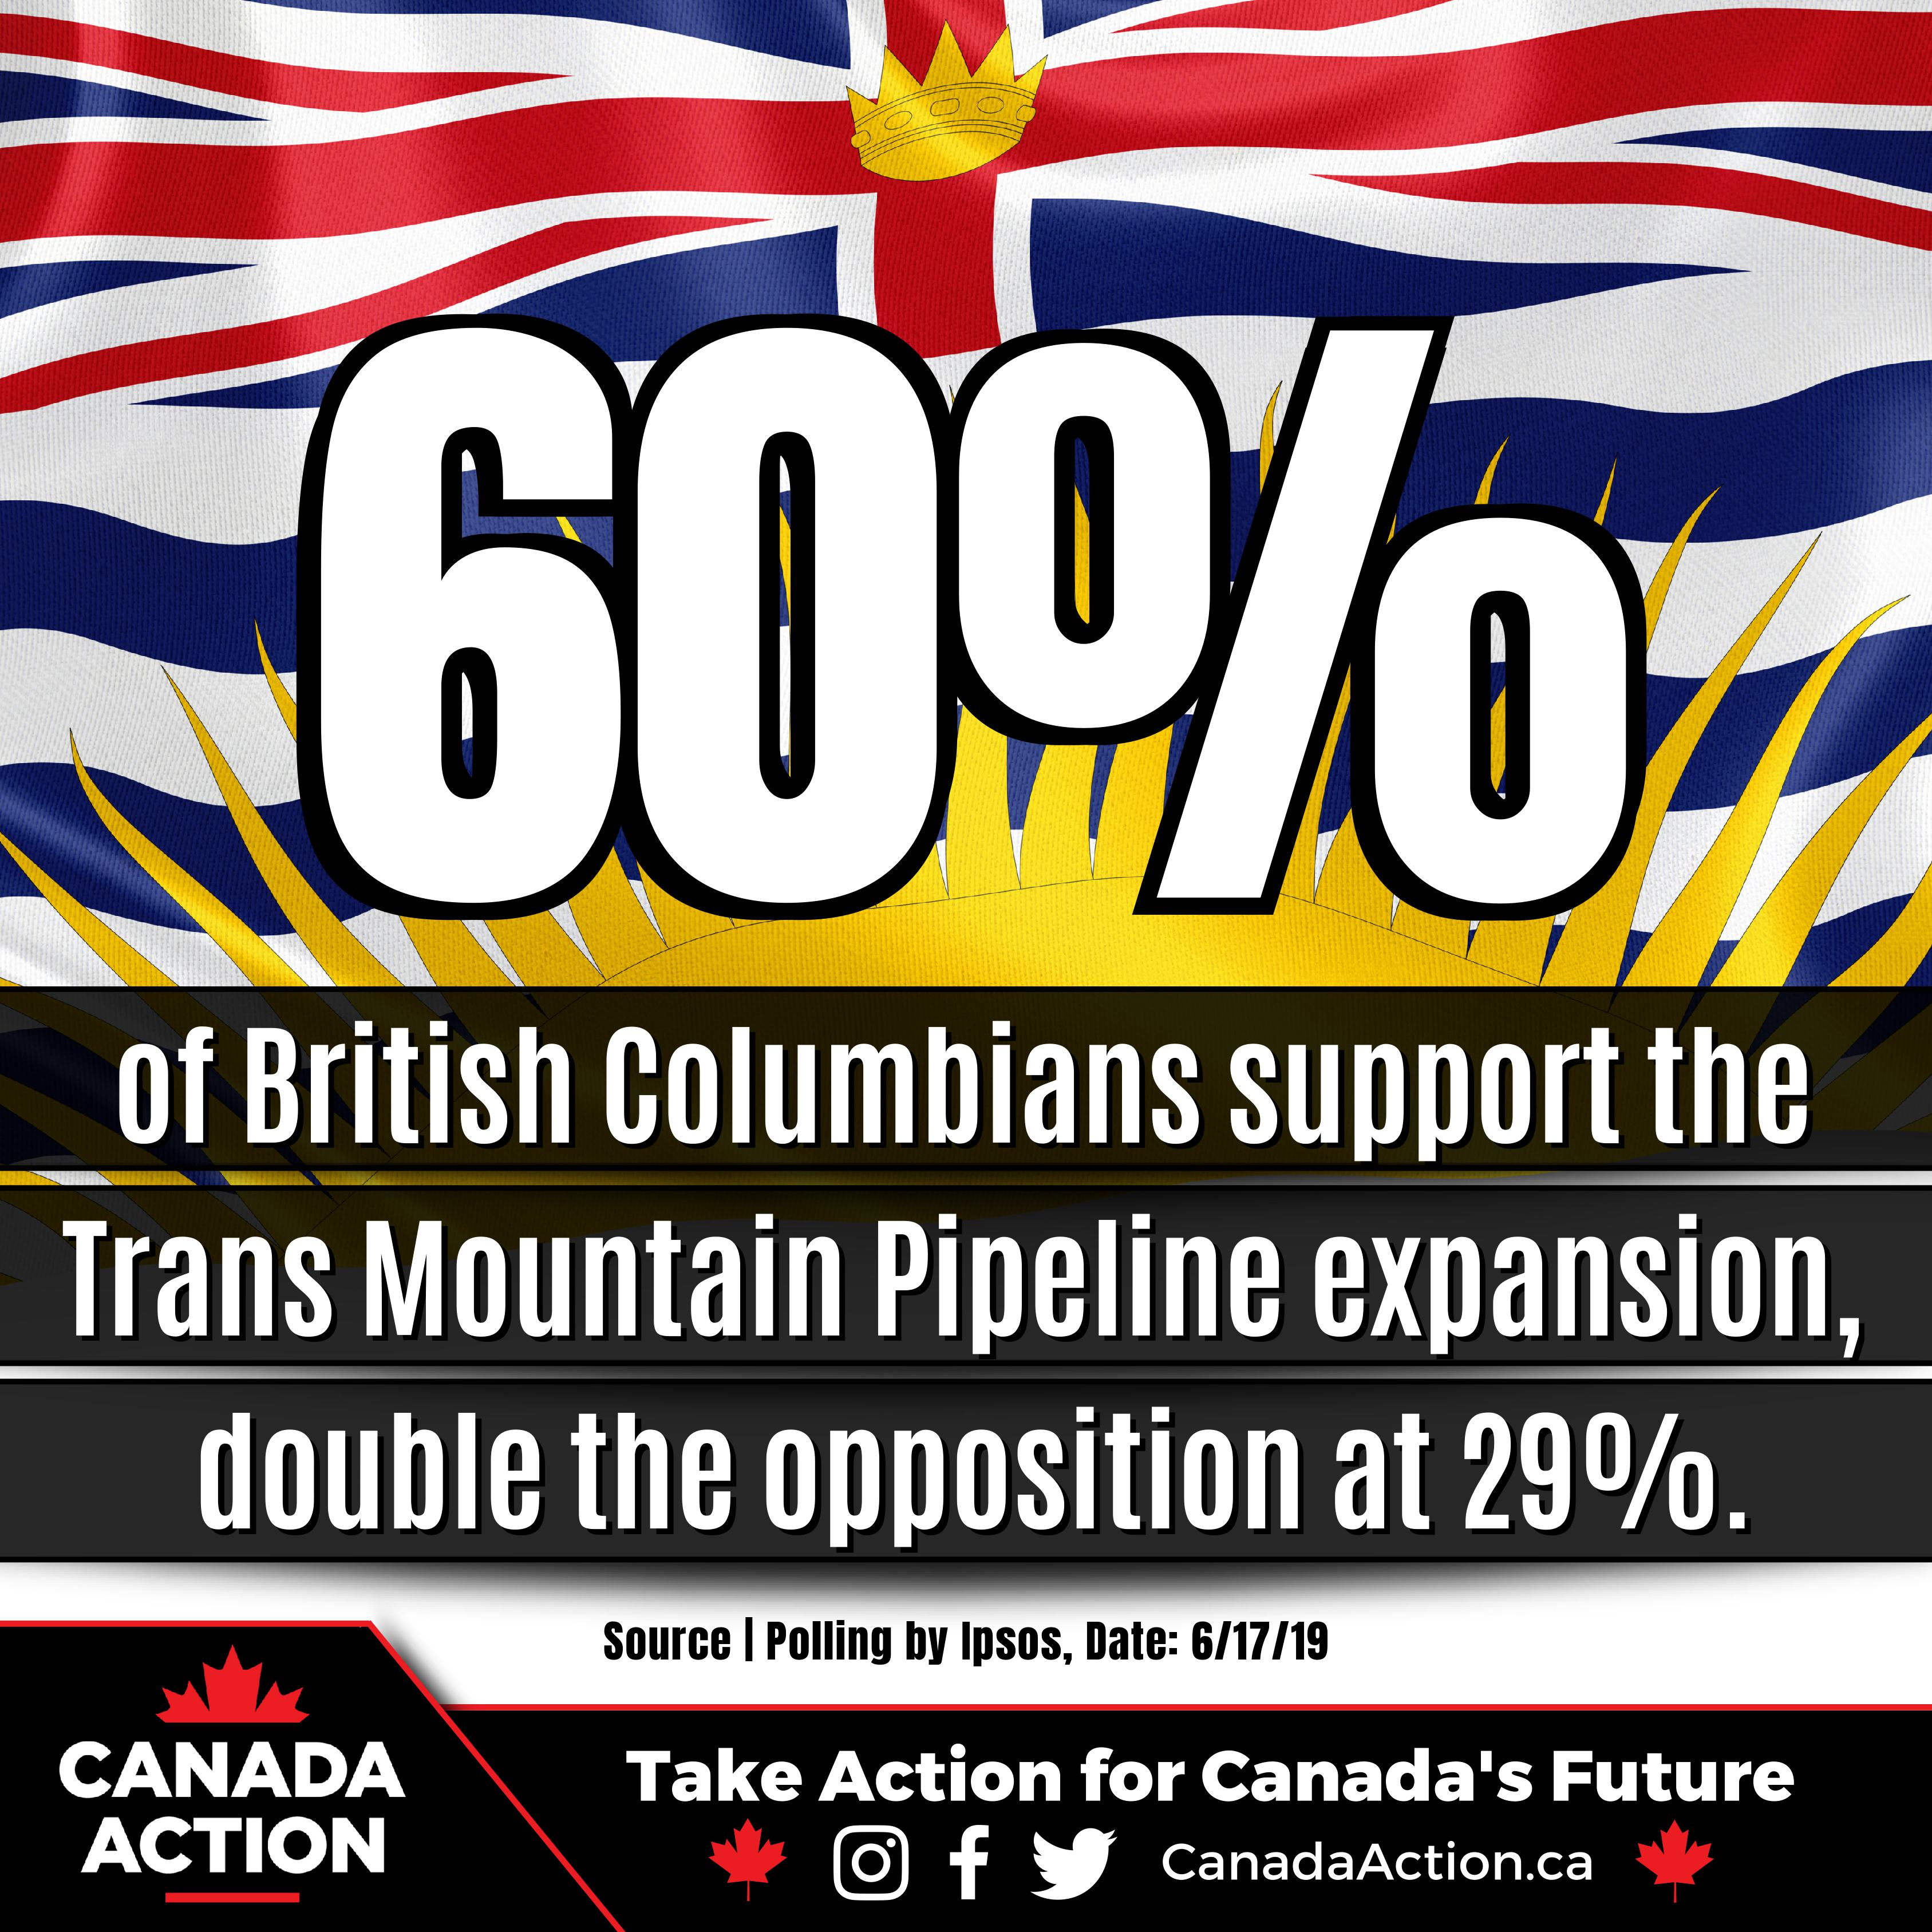 a majority of british columbians support trans mountain pipeline expansion 2019